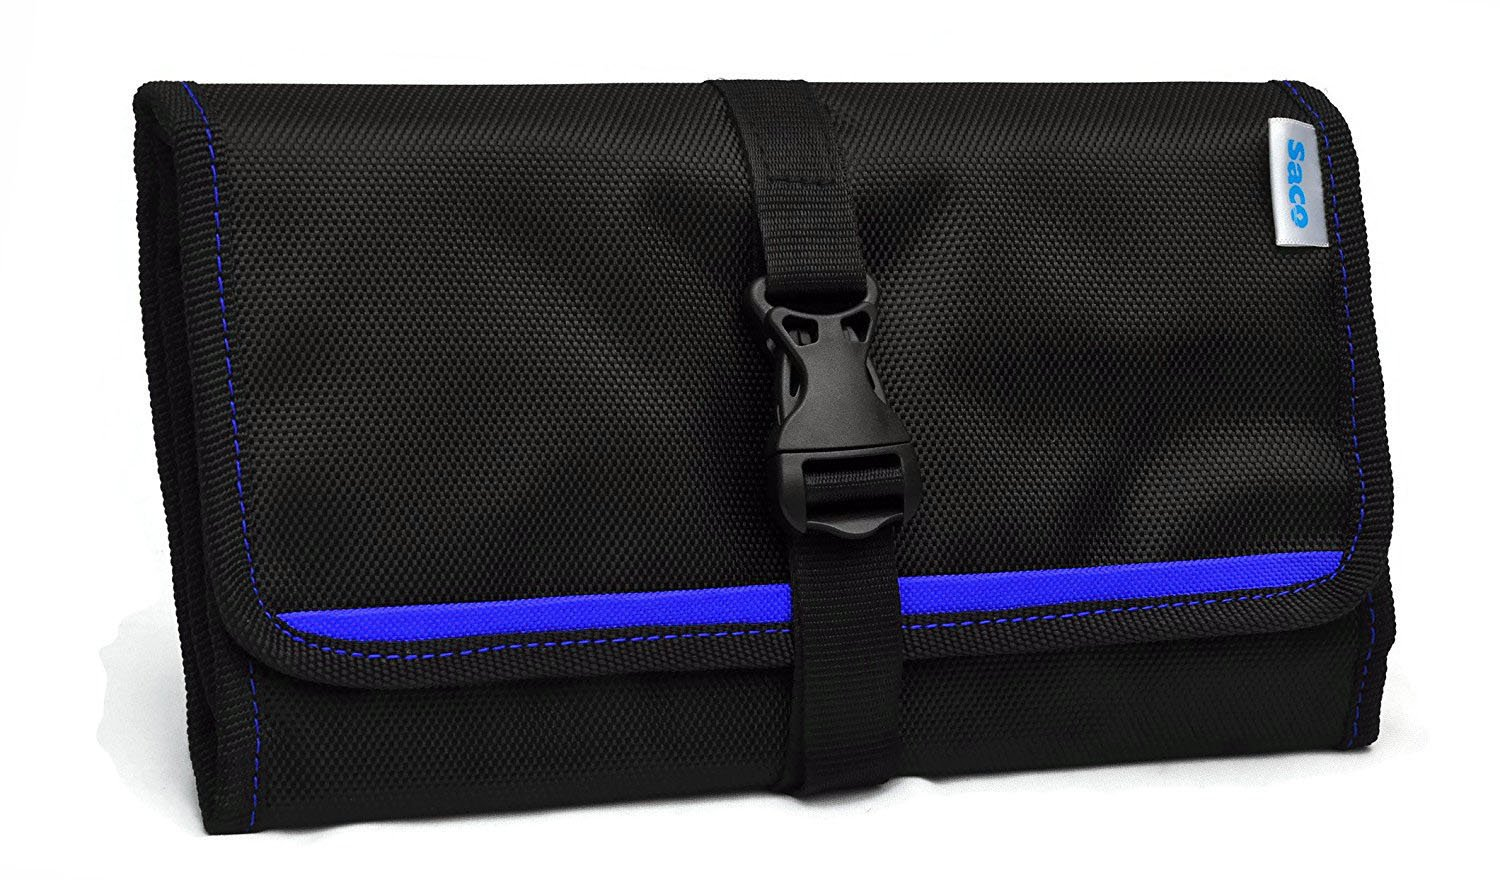 Saco Gadget Organizer Bag for All Gadgets (Blue) product image